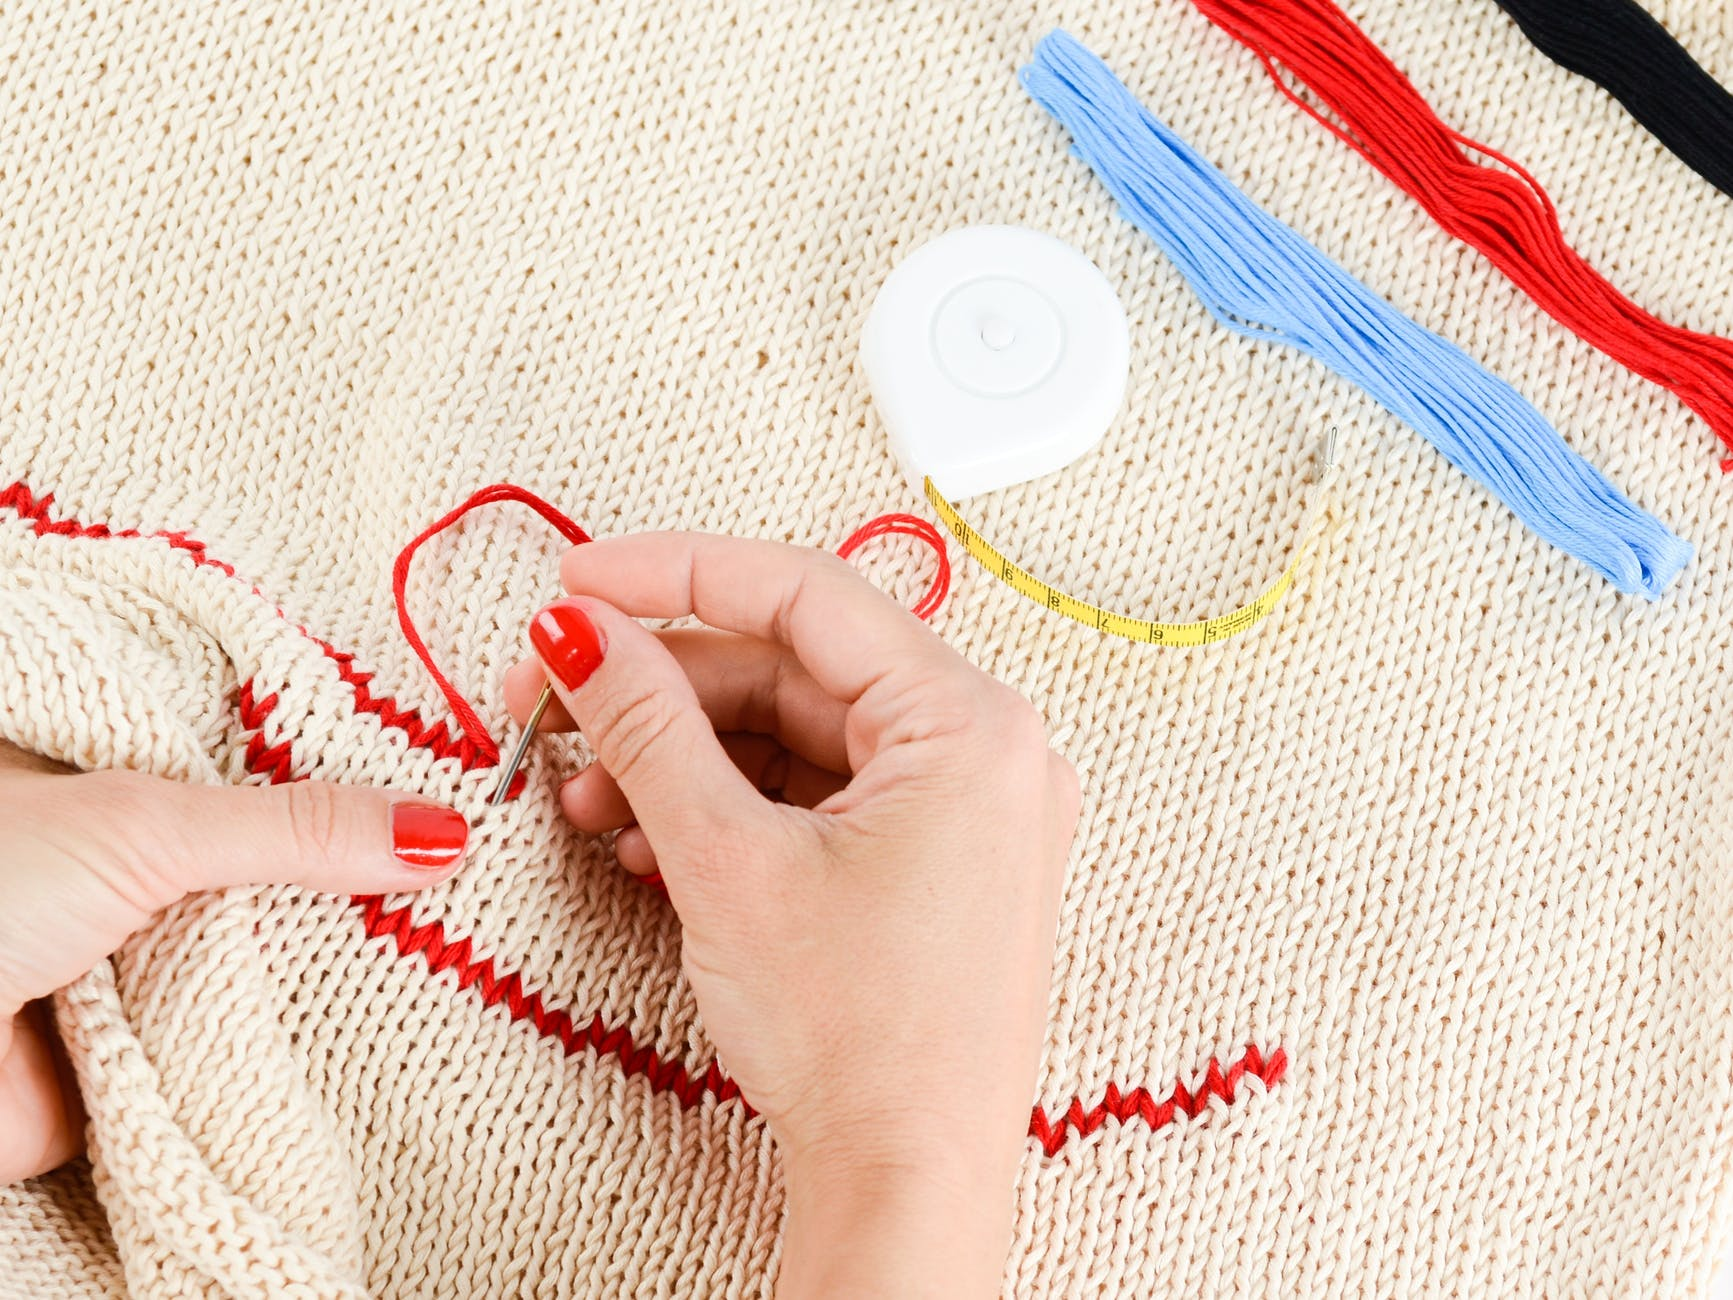 Choosing the Right Needle for the Task | Must-Have Hand Embroidery Supplies